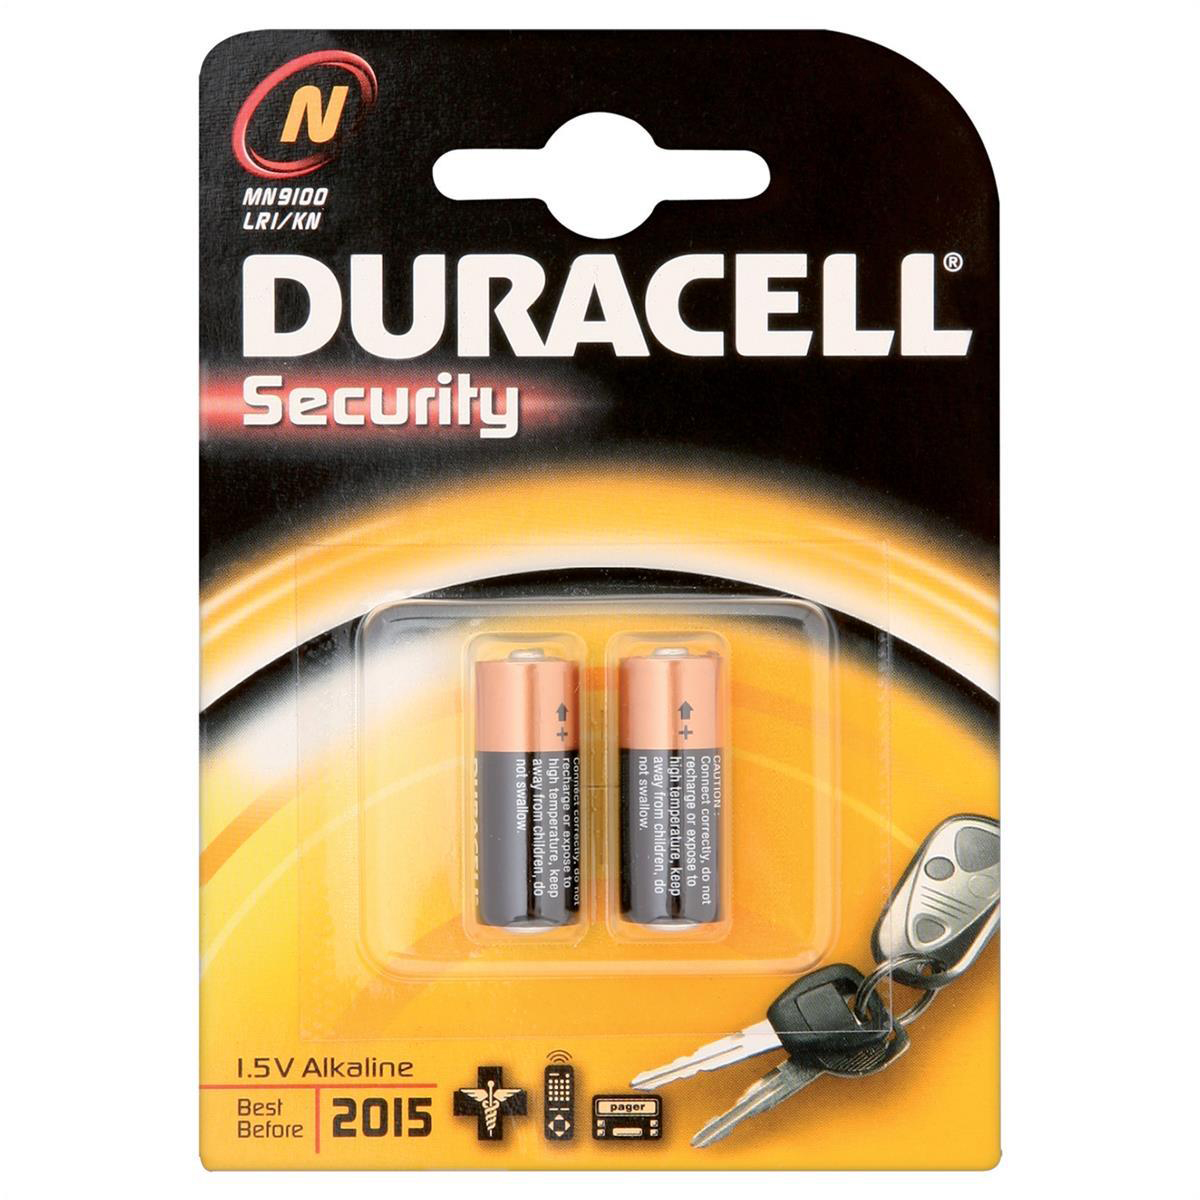 Button Cell Duracell MN9100N Battery Alkaline for Camera Calculator or Pager 1.5V Ref 81223600 Pack 2